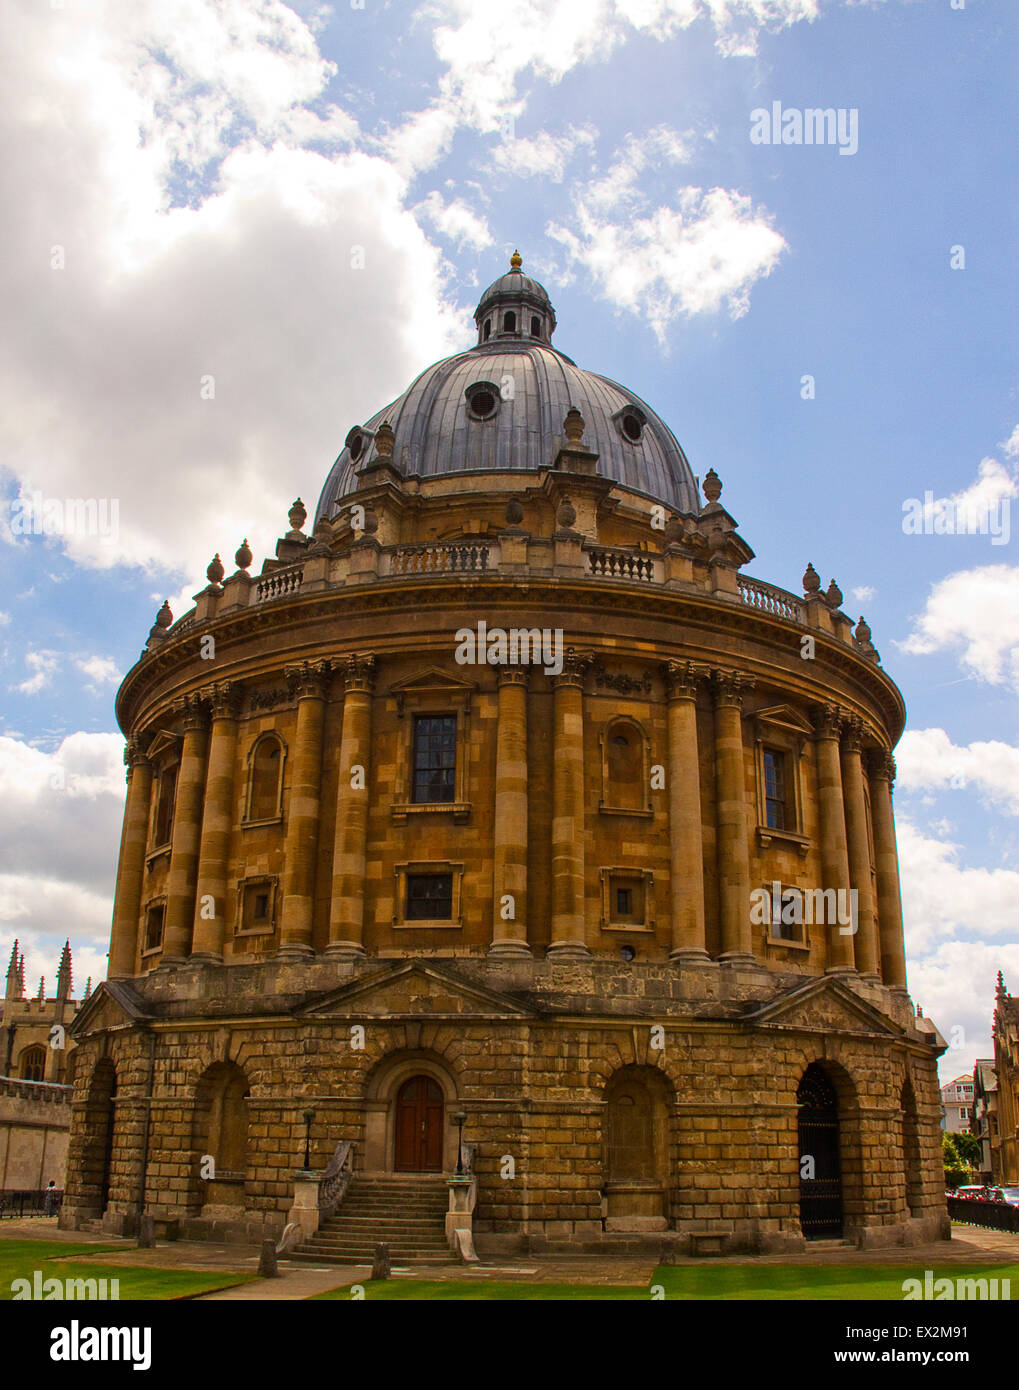 Radcliffe Camera, Oxford University United Kingdom - Stock Image